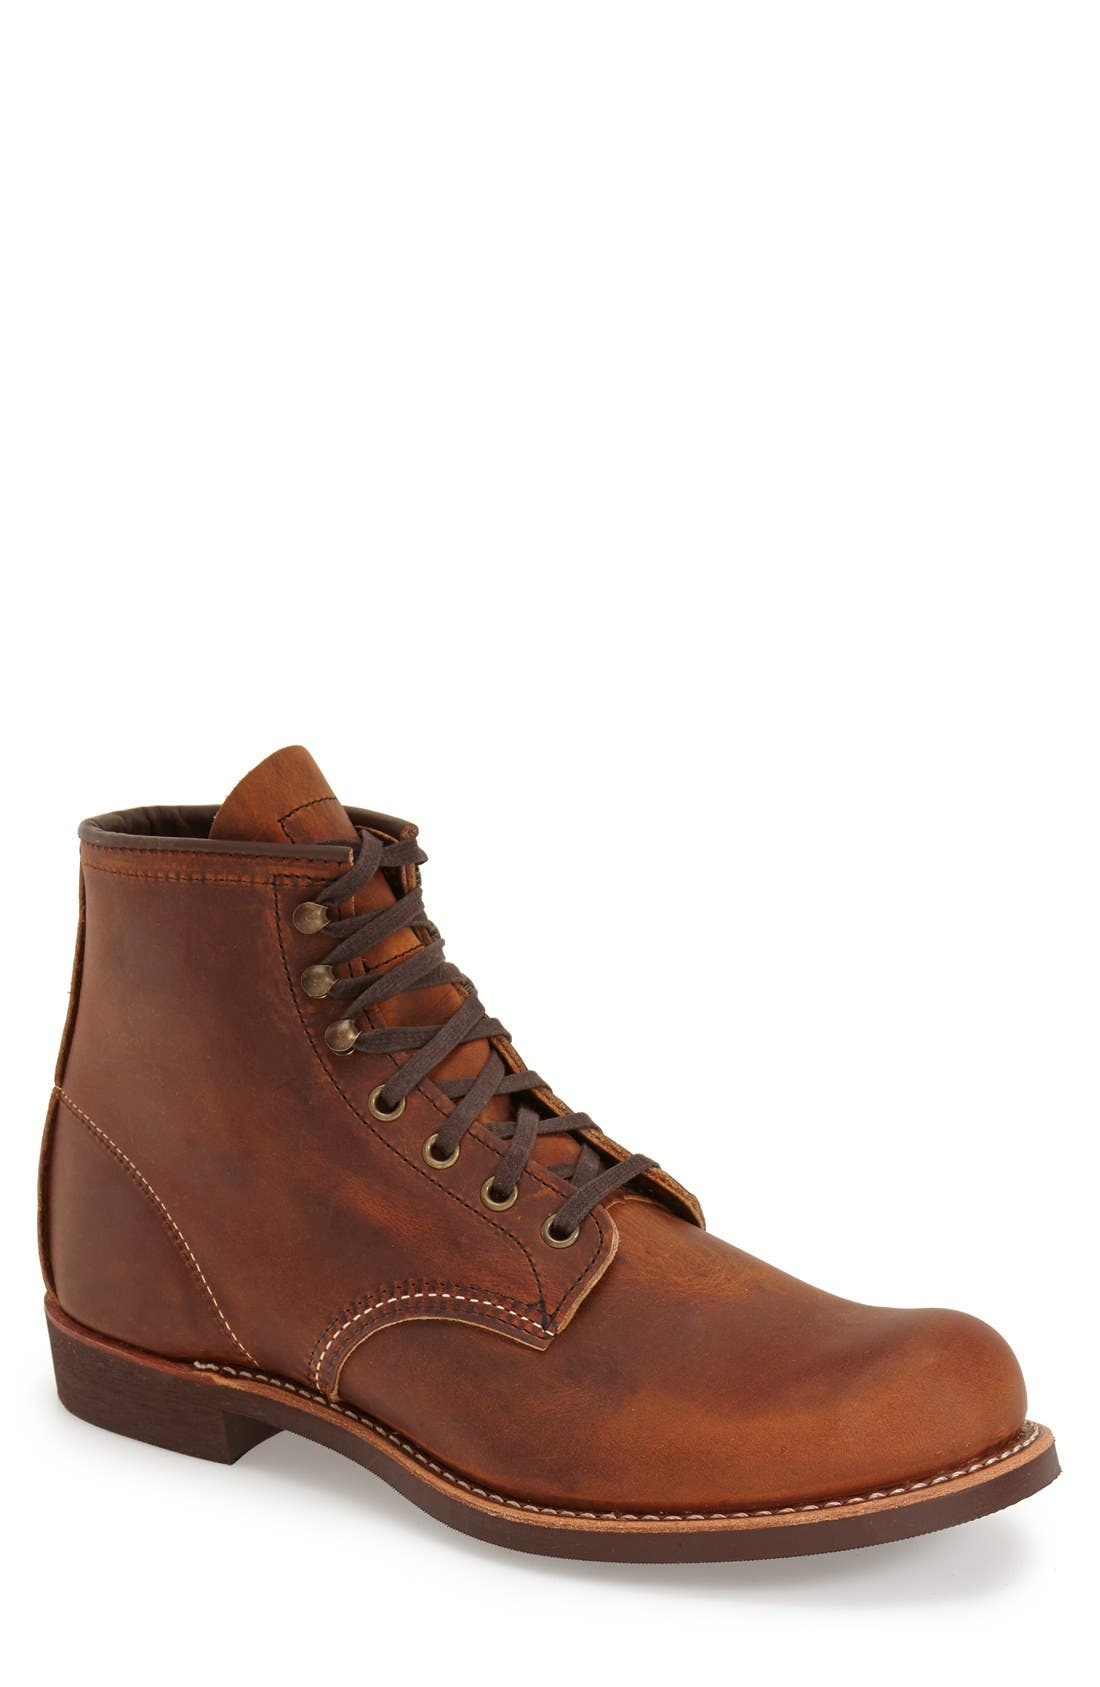 Blacksmith Boot,                         Main,                         color, Copper Leather